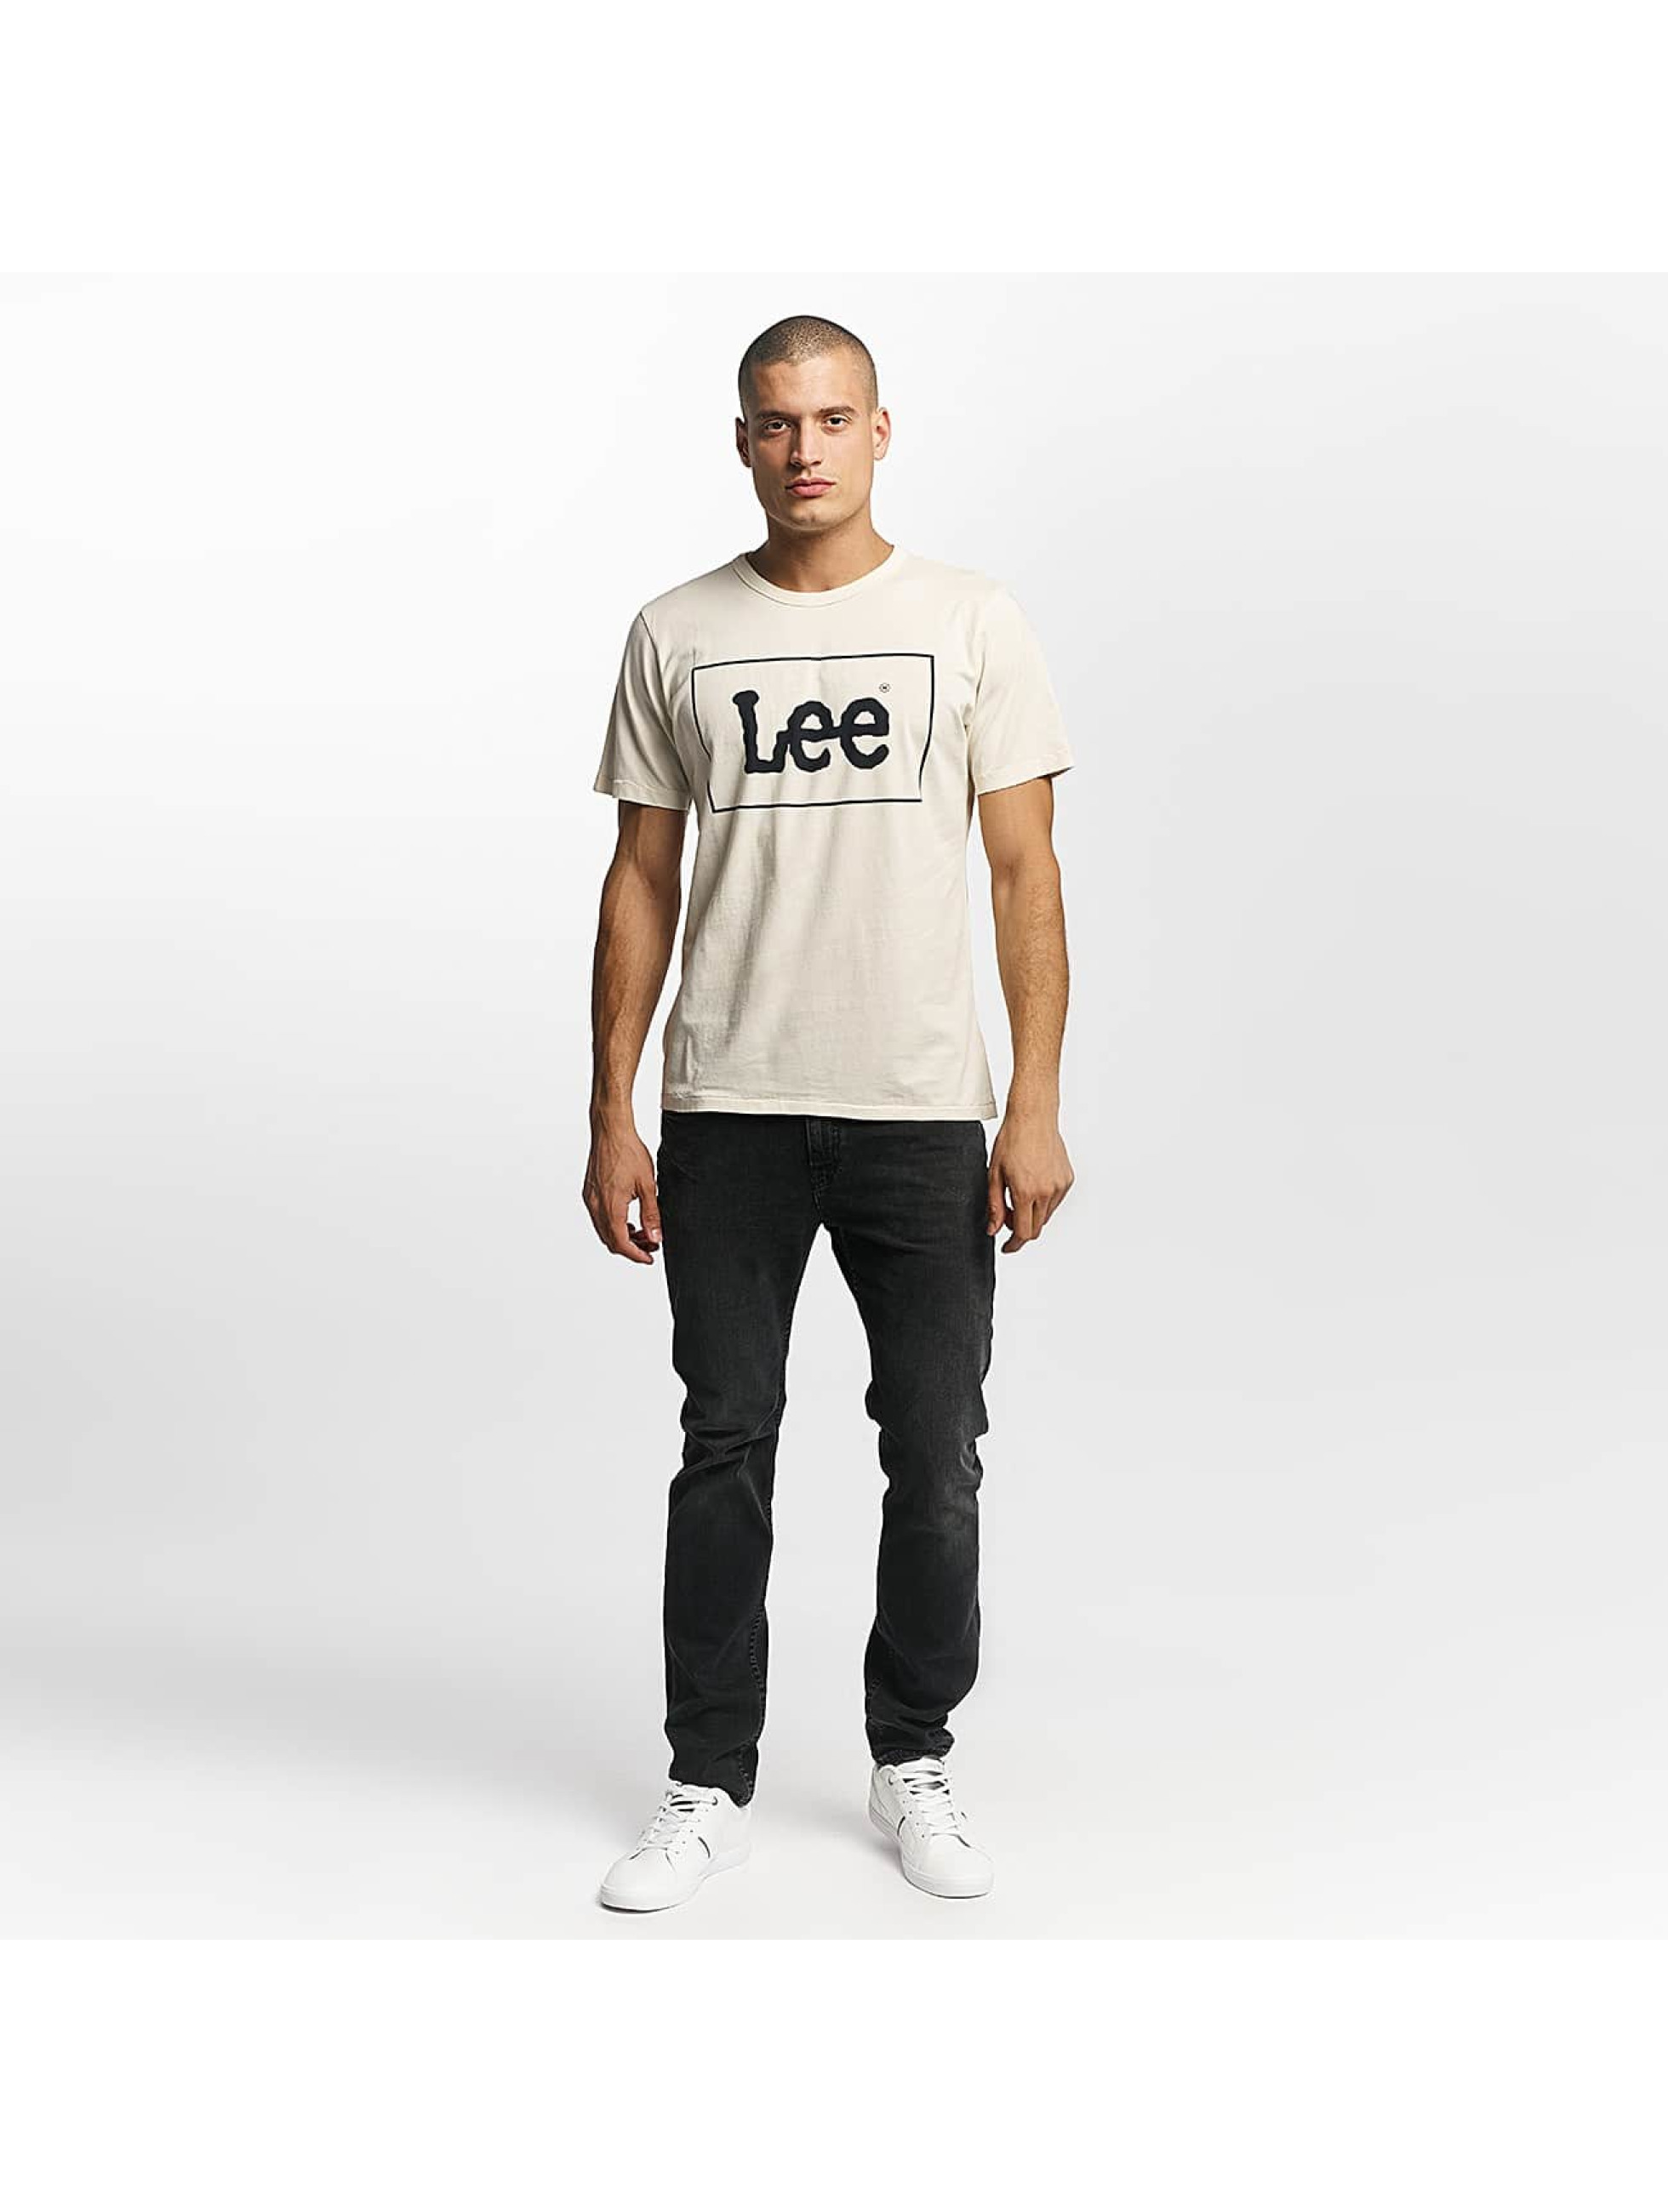 Lee T-Shirt Lee white